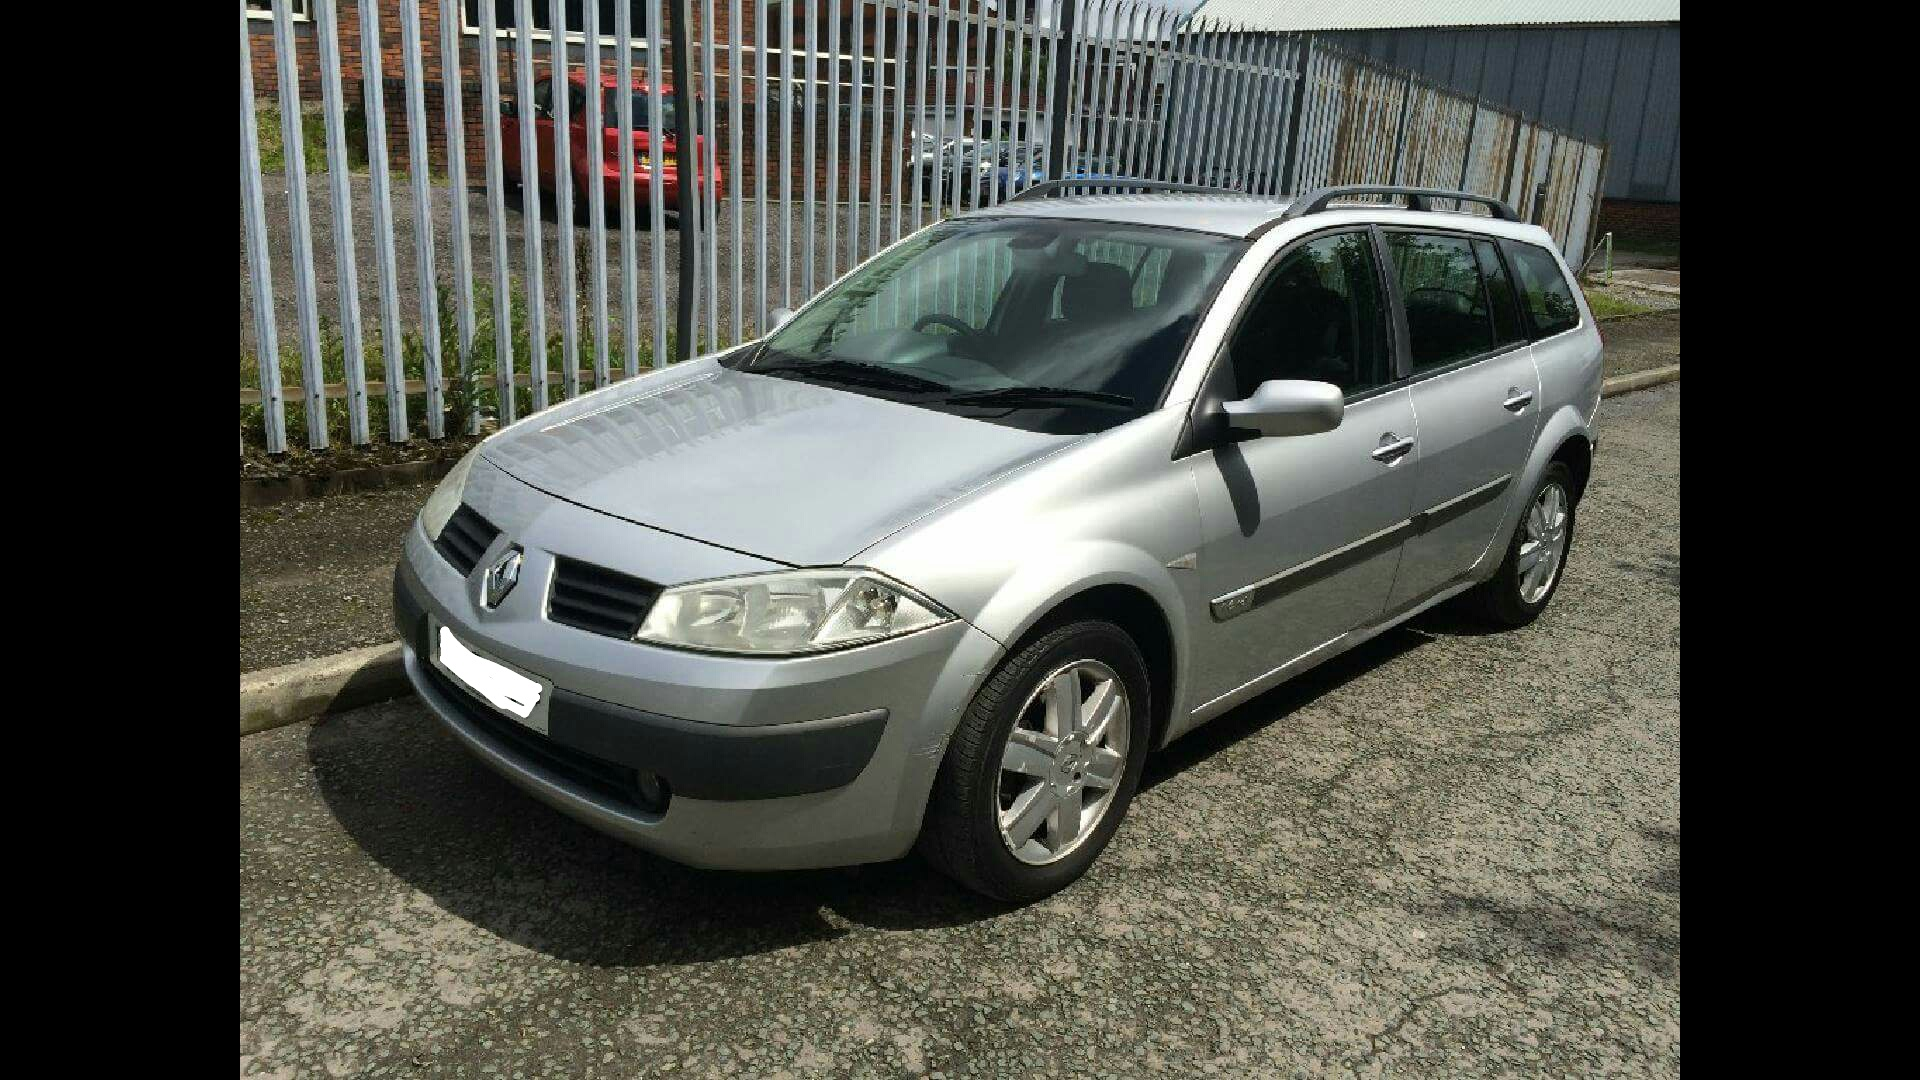 medium resolution of renault megane 05 spark plug and coil replacement